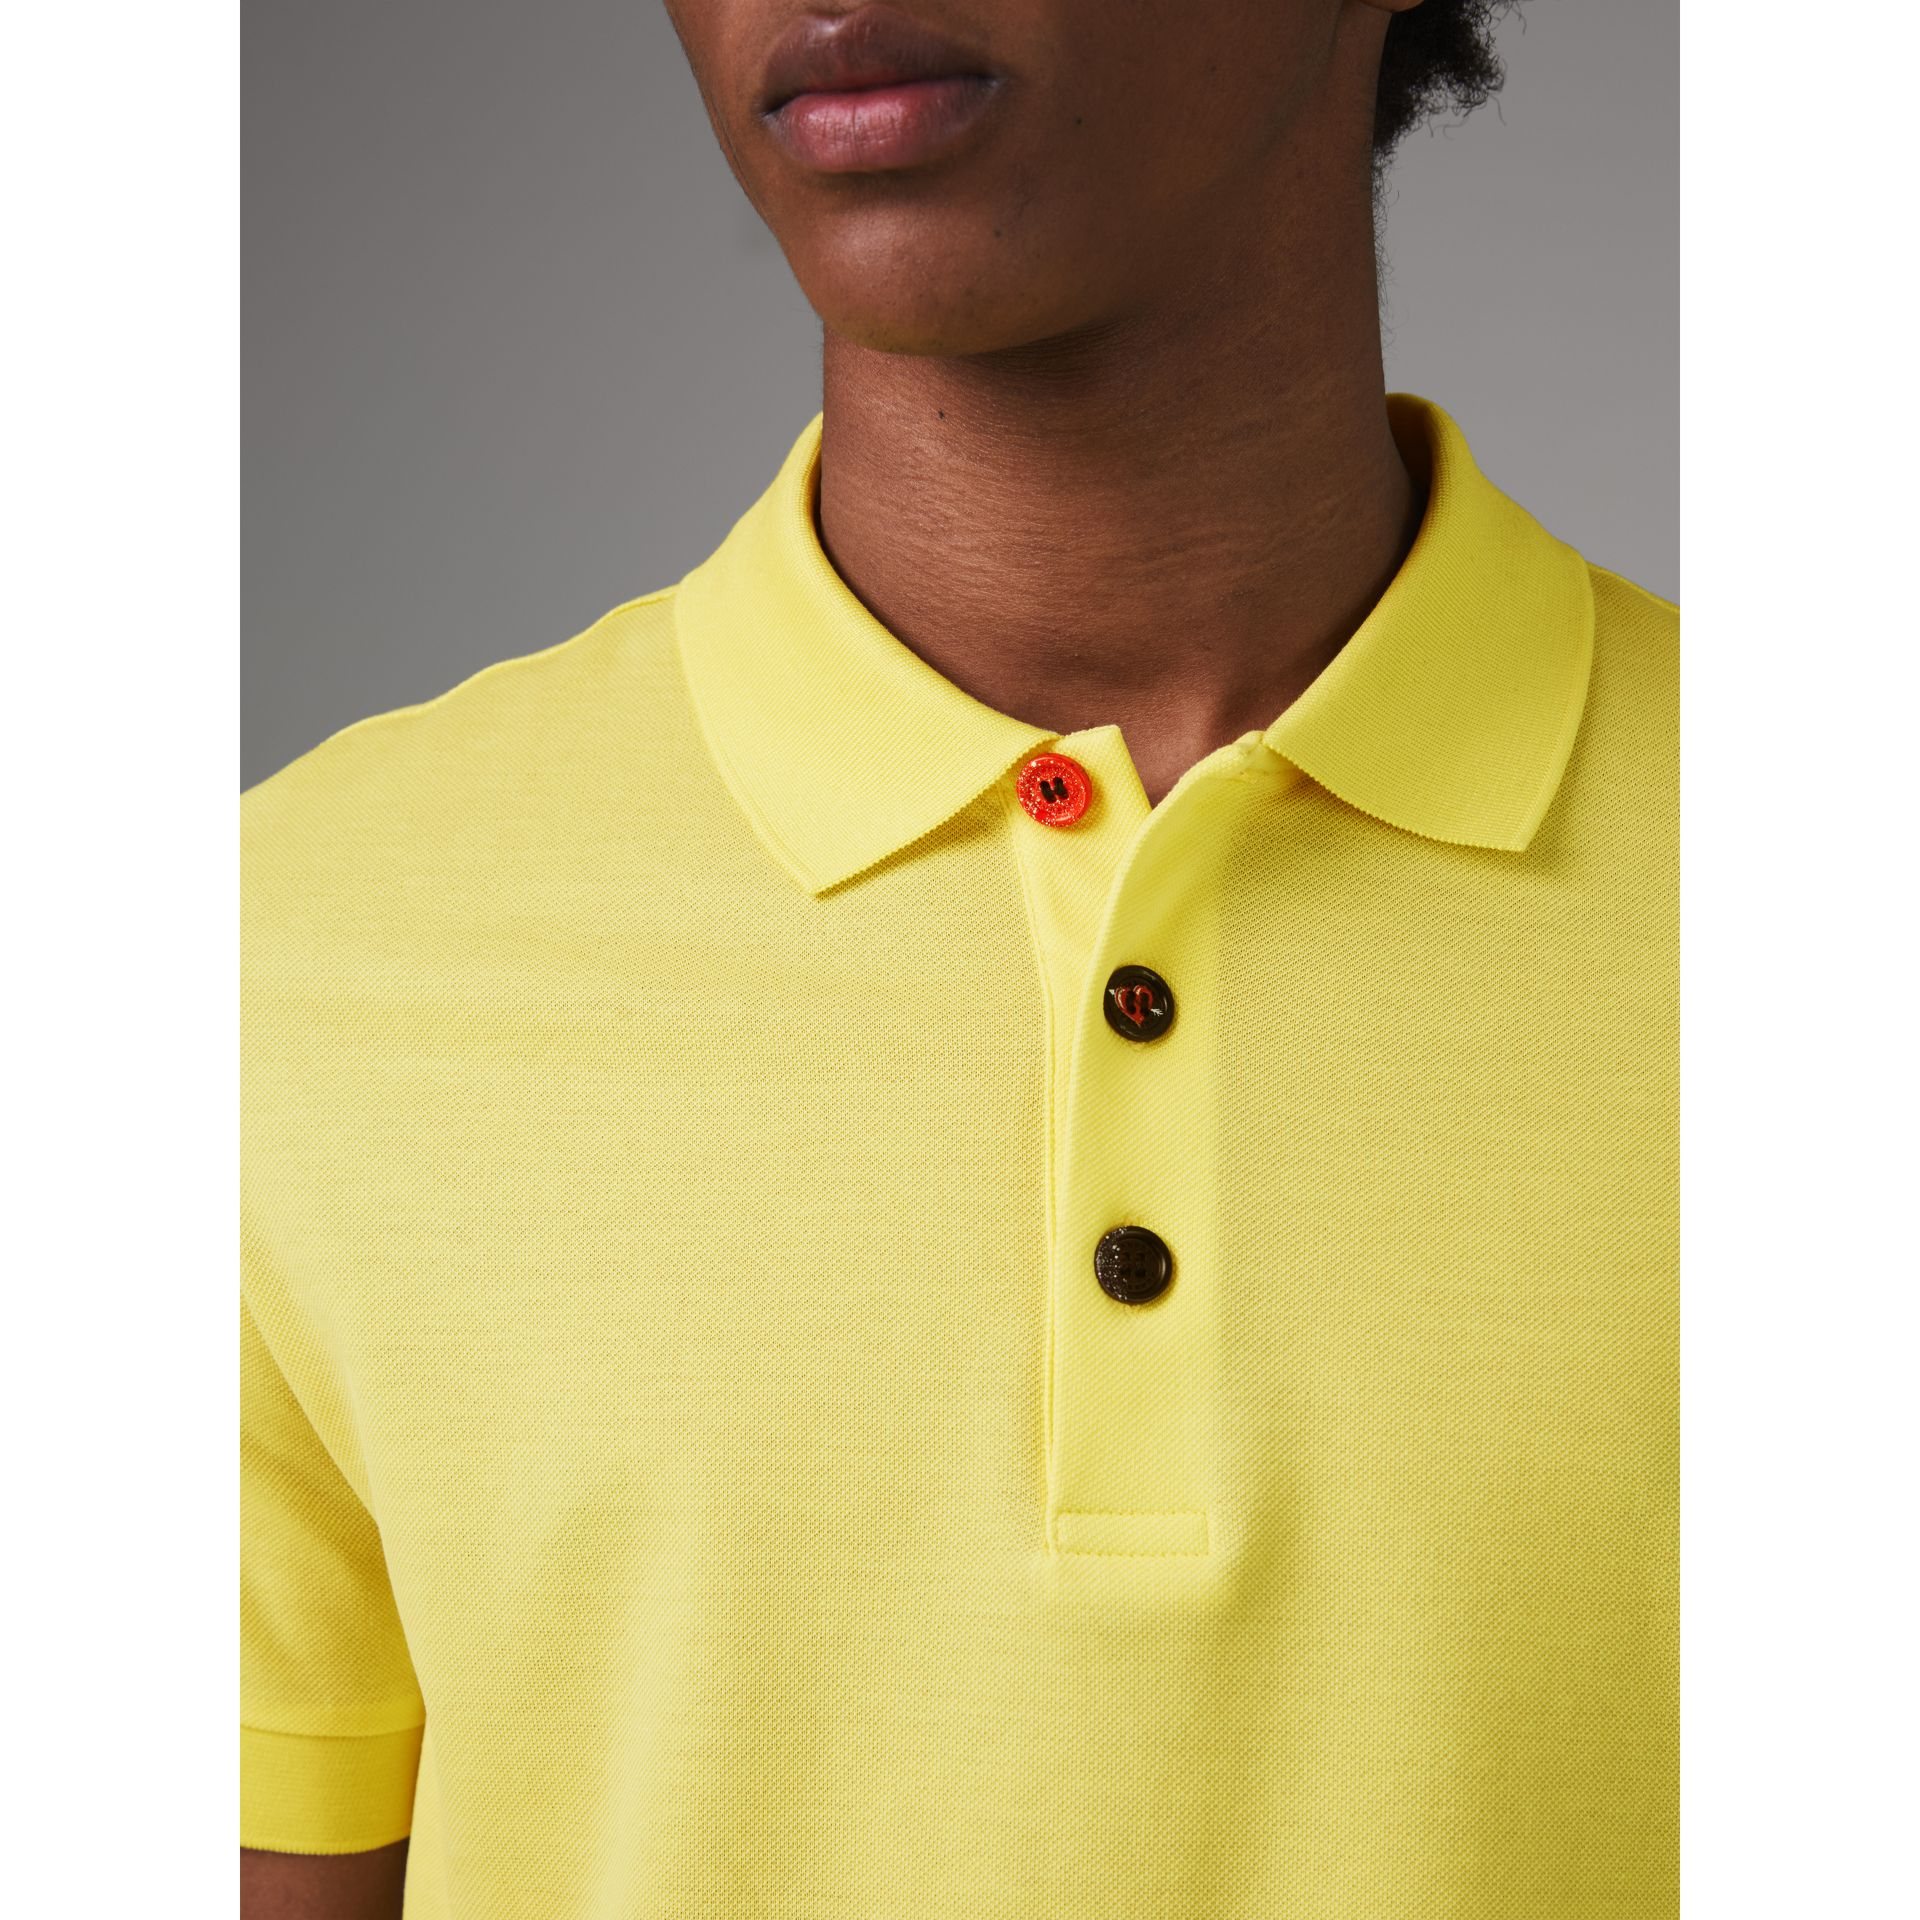 Painted Button Cotton Piqué Polo Shirt in Vibrant Lemon - Men | Burberry United Kingdom - gallery image 1